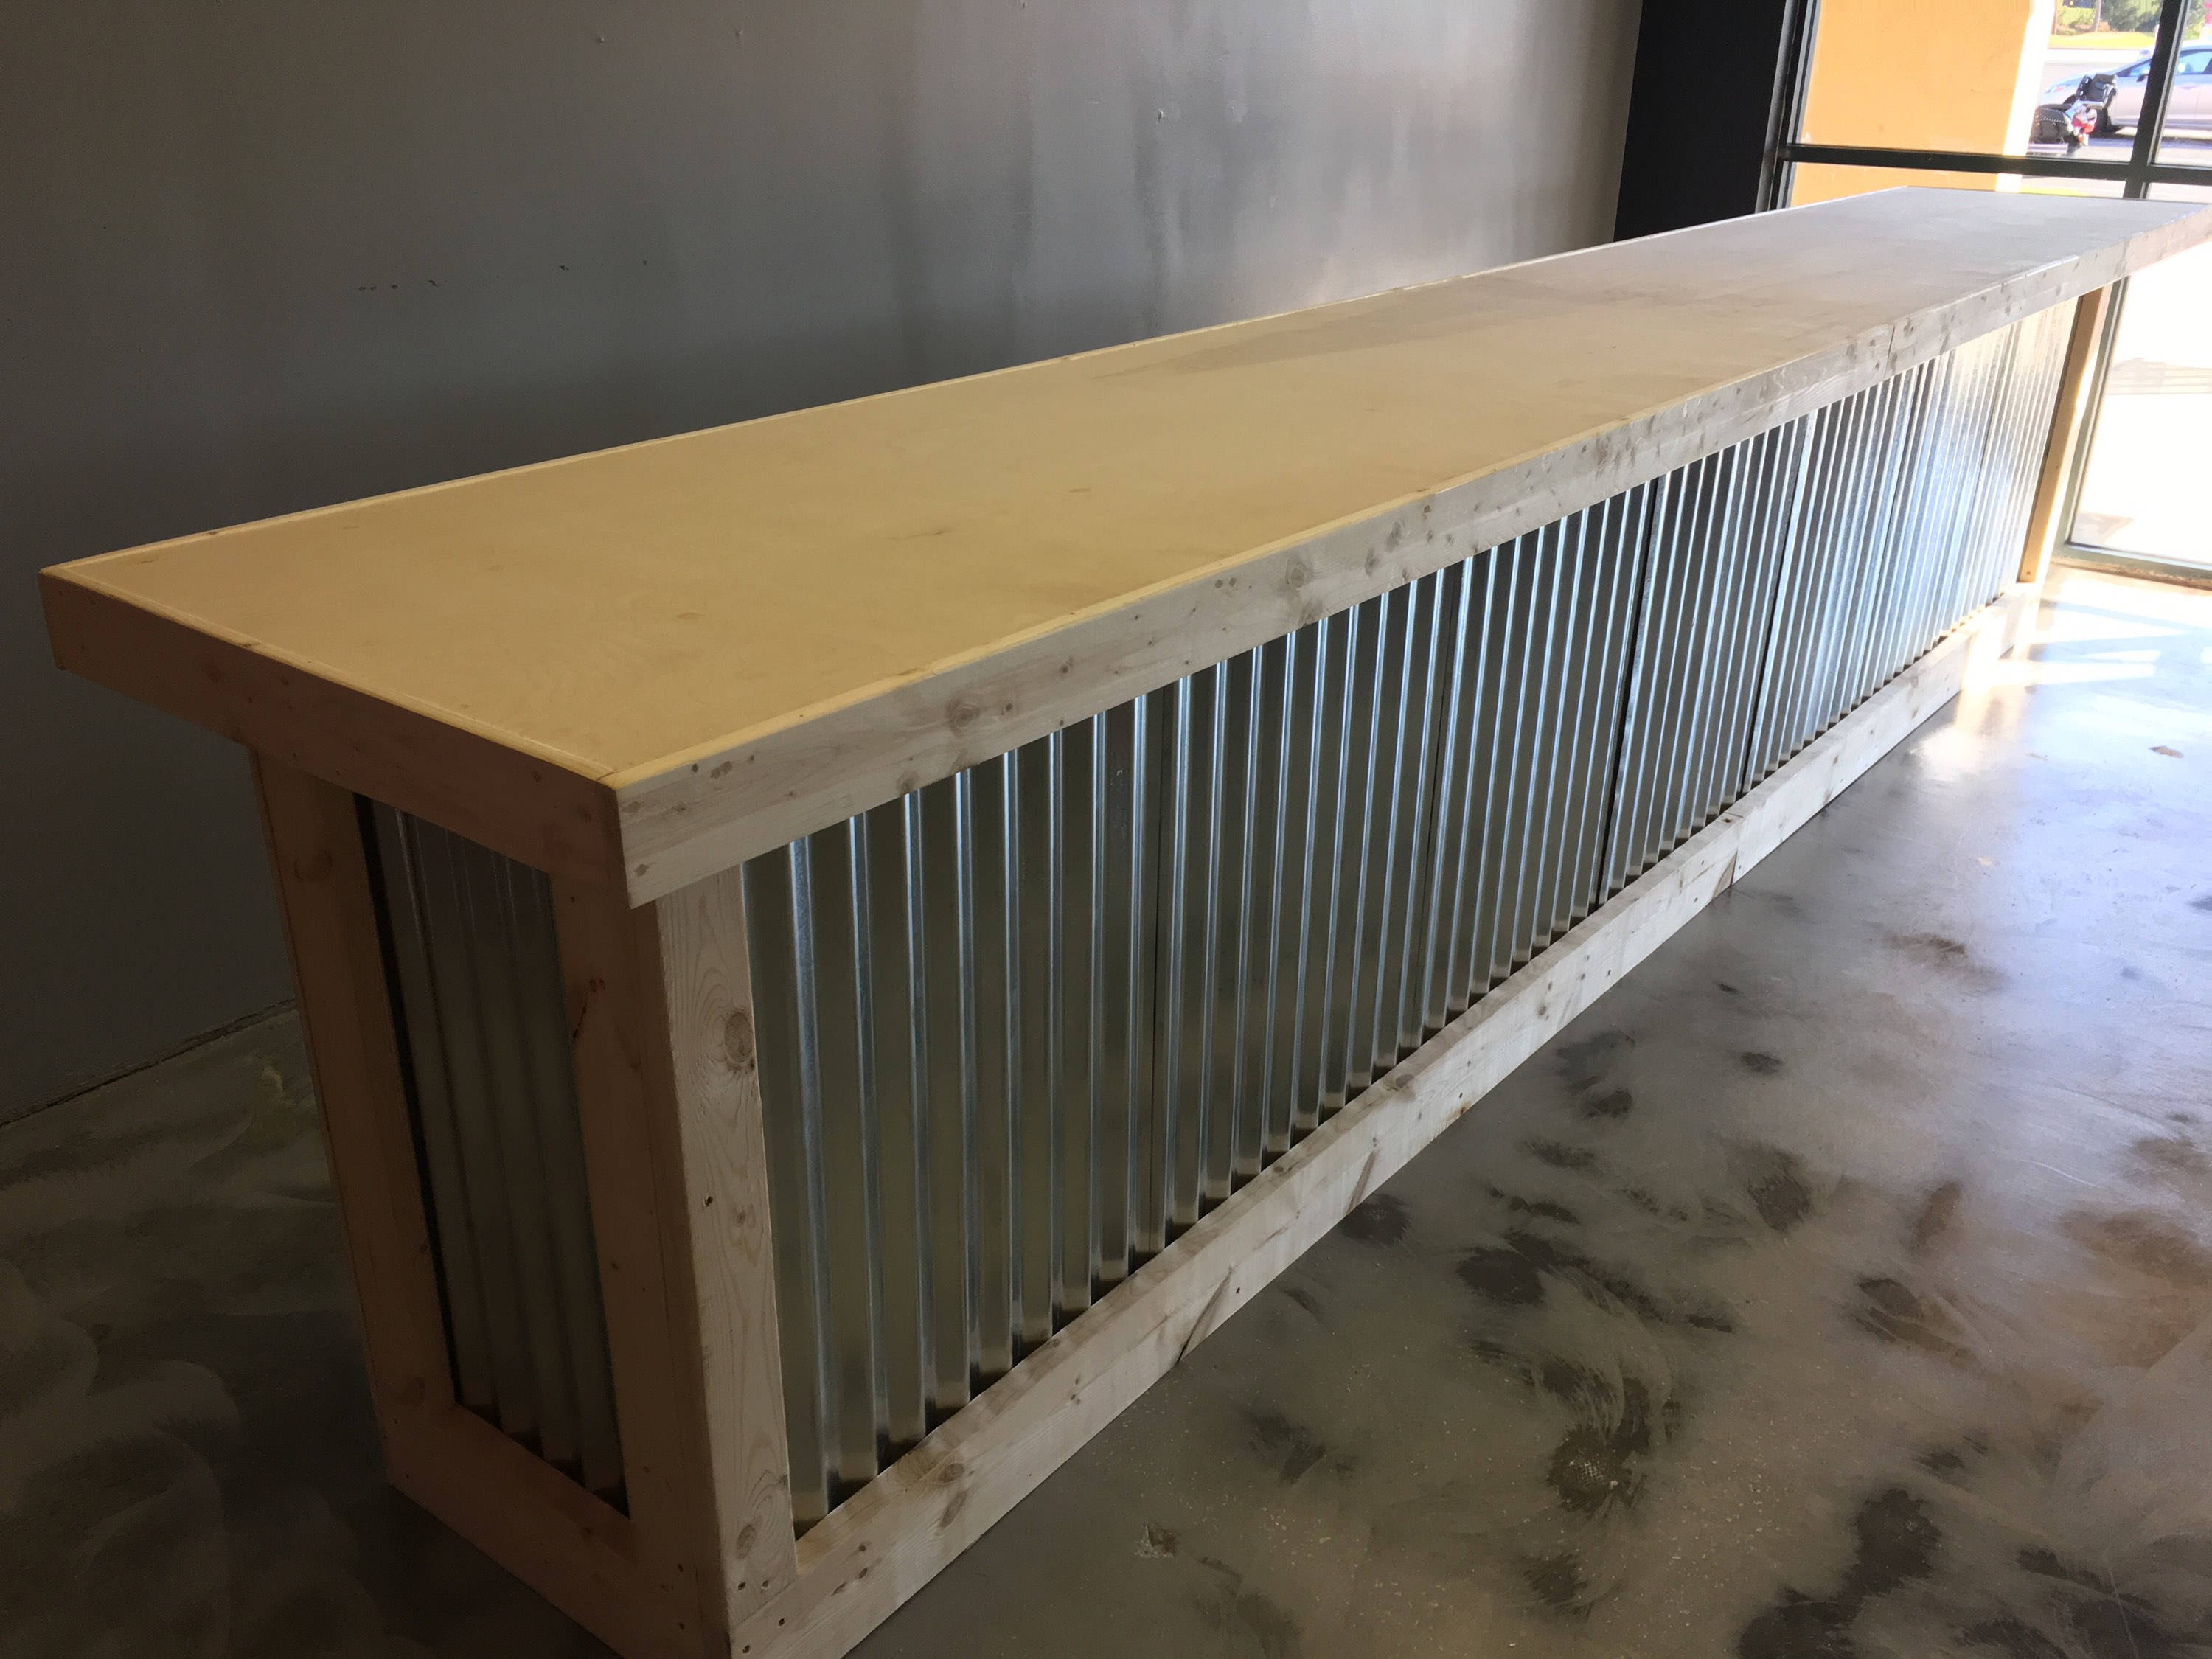 Trendy Corrugated Metal Sideboards With The Vapor – 16' Corrugated Metal Rustic Or Industrial Sales Counter (View 11 of 20)